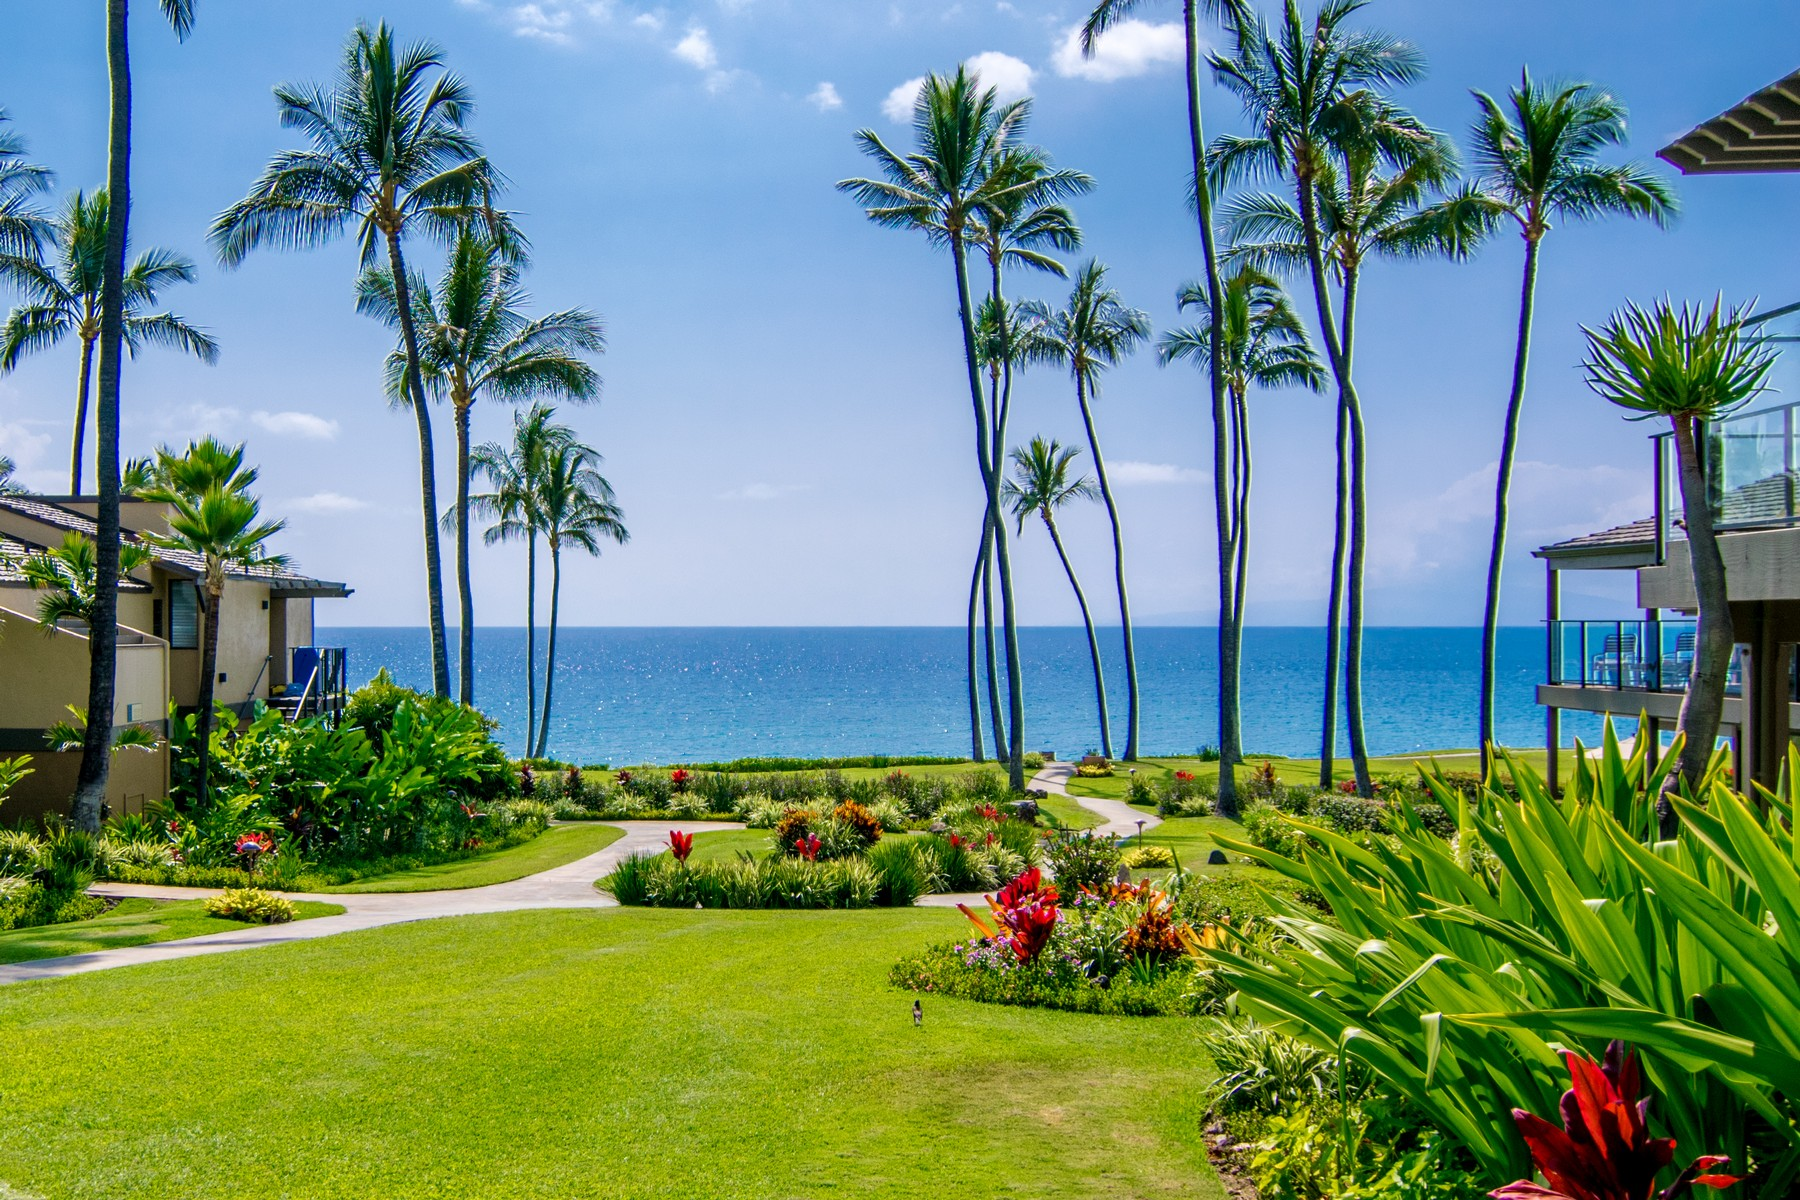 Piso por un Venta en First One Bedroom Wailea Elua Oceanfront Condo in 9 Years! 3600 Wailea Alanui Drive, Wailea Elua 1401 Wailea, Hawaii, 96753 Estados Unidos